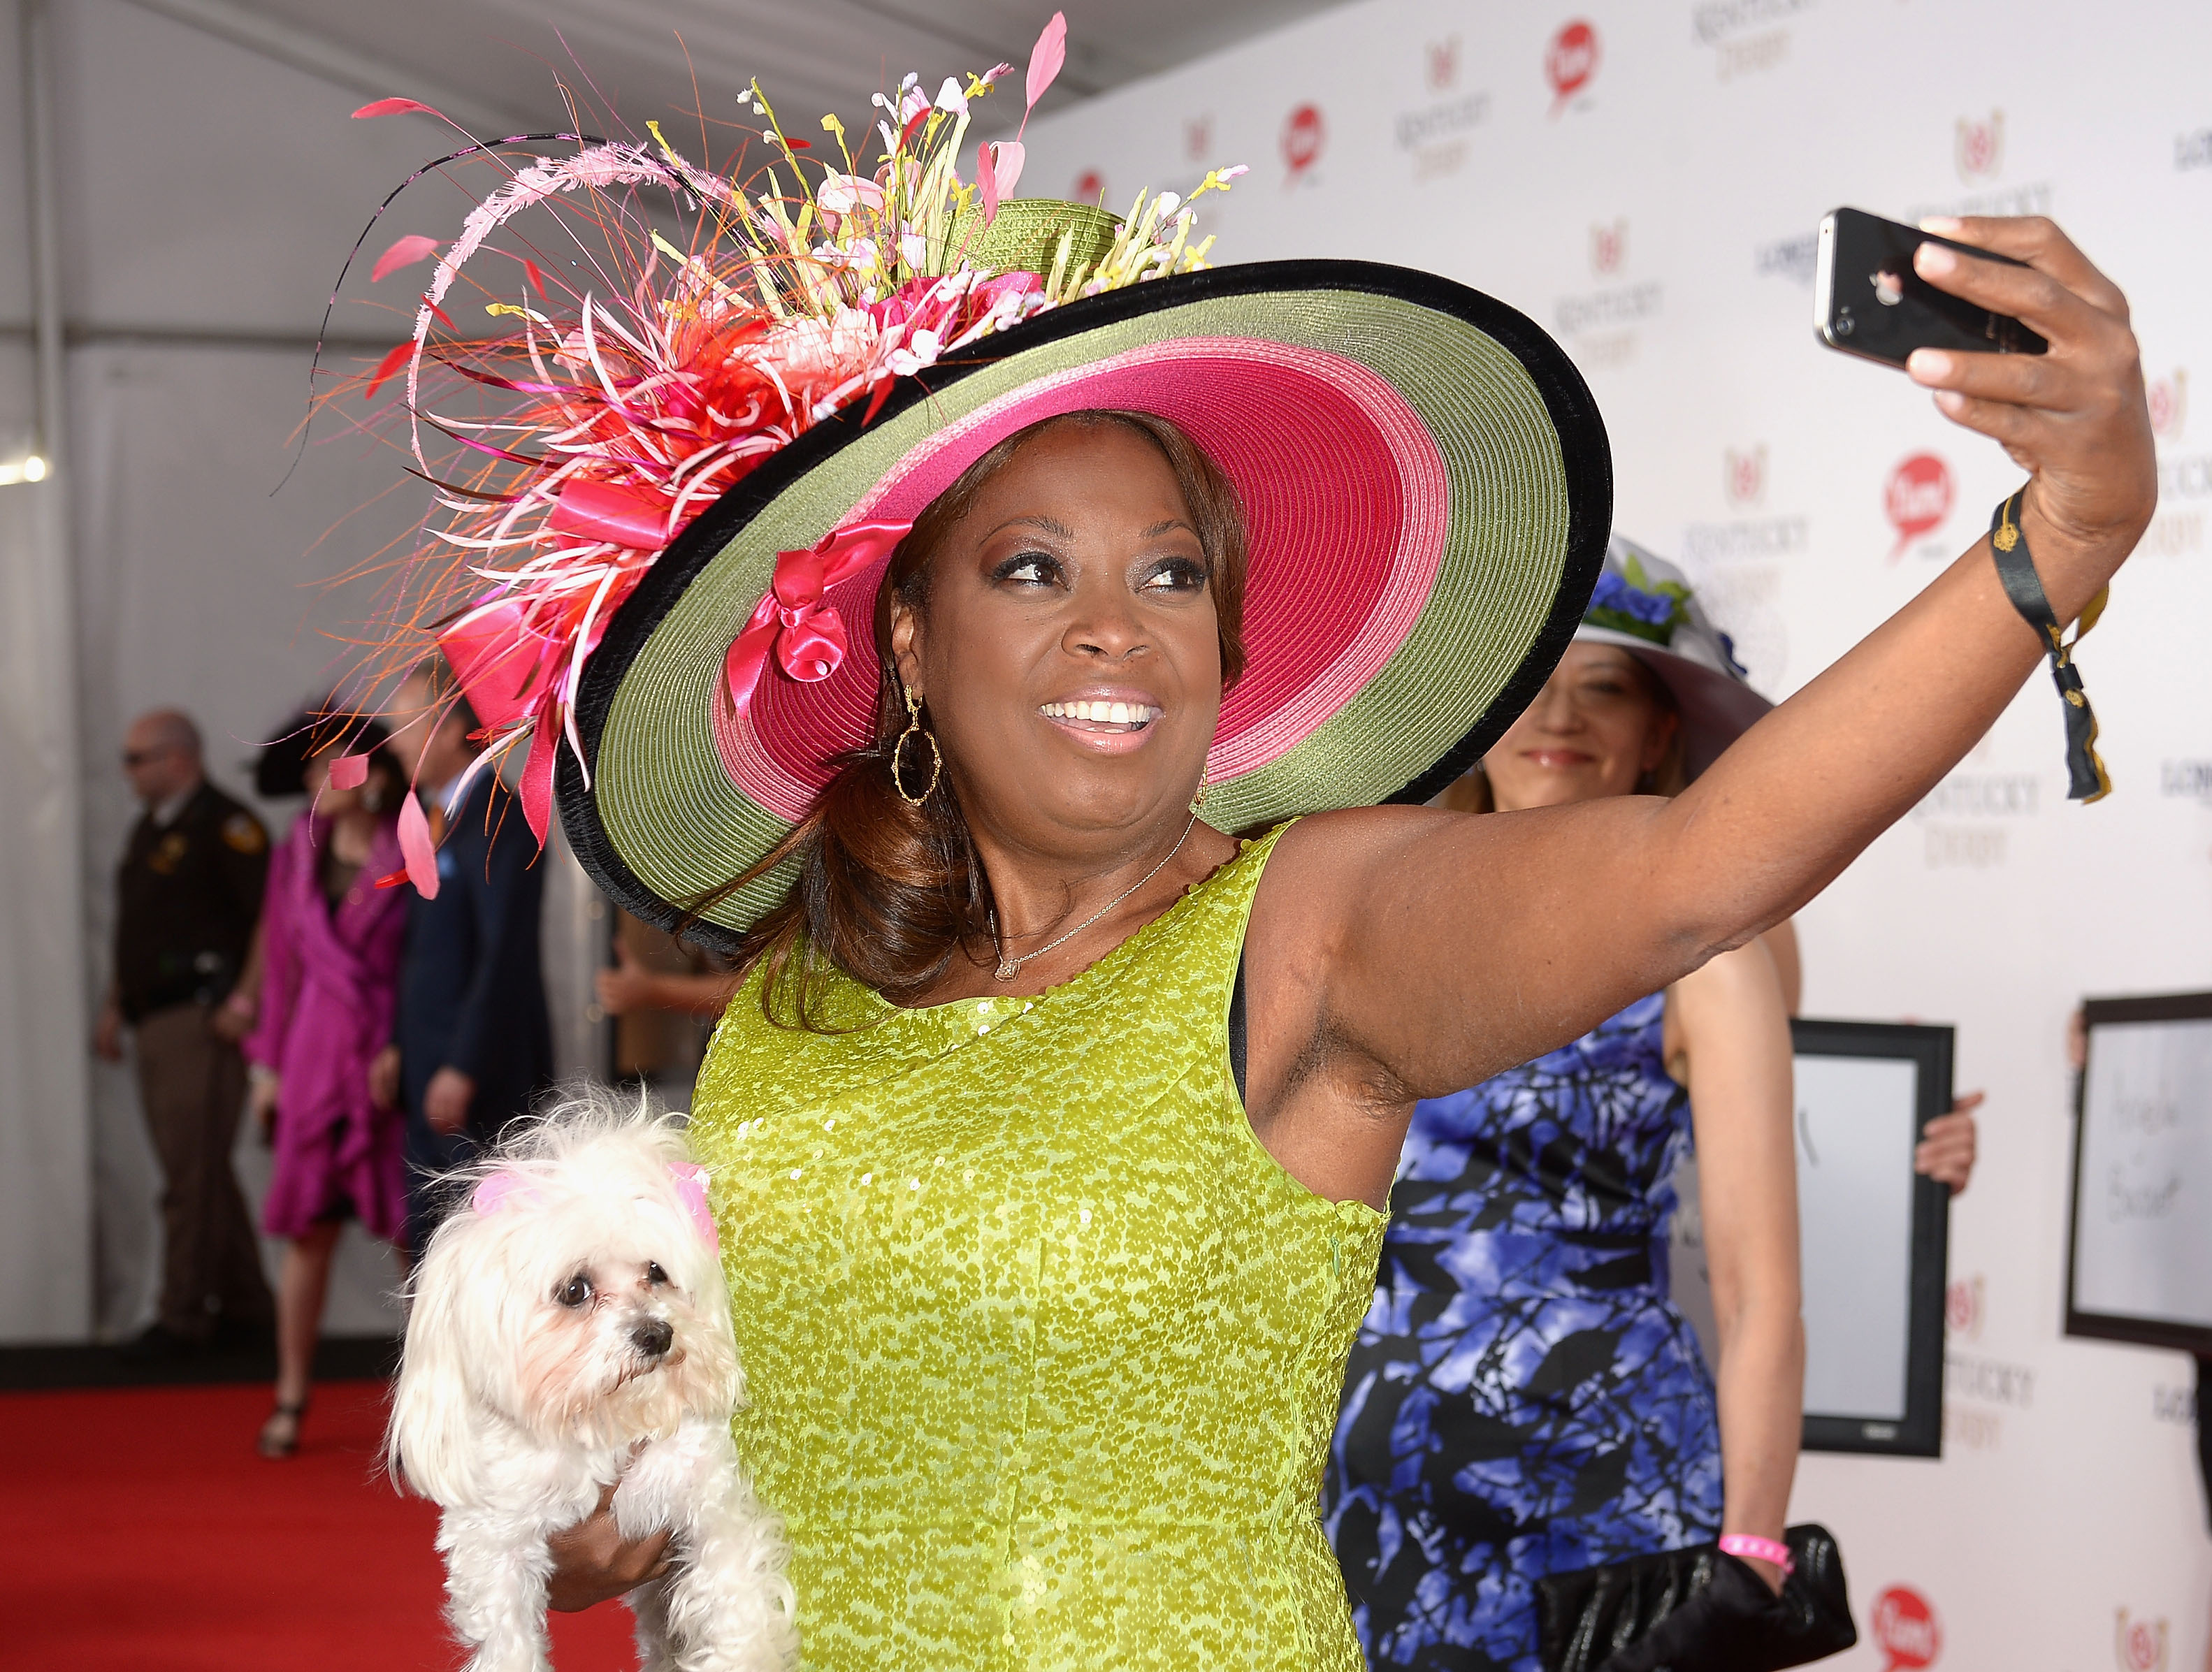 Star Jones attends 140th Kentucky Derby at Churchill Downs on May 3, 2014 in Louisville, Kentucky.  (Photo by Gustavo Caballero/Getty Images for Moet & Chandon)